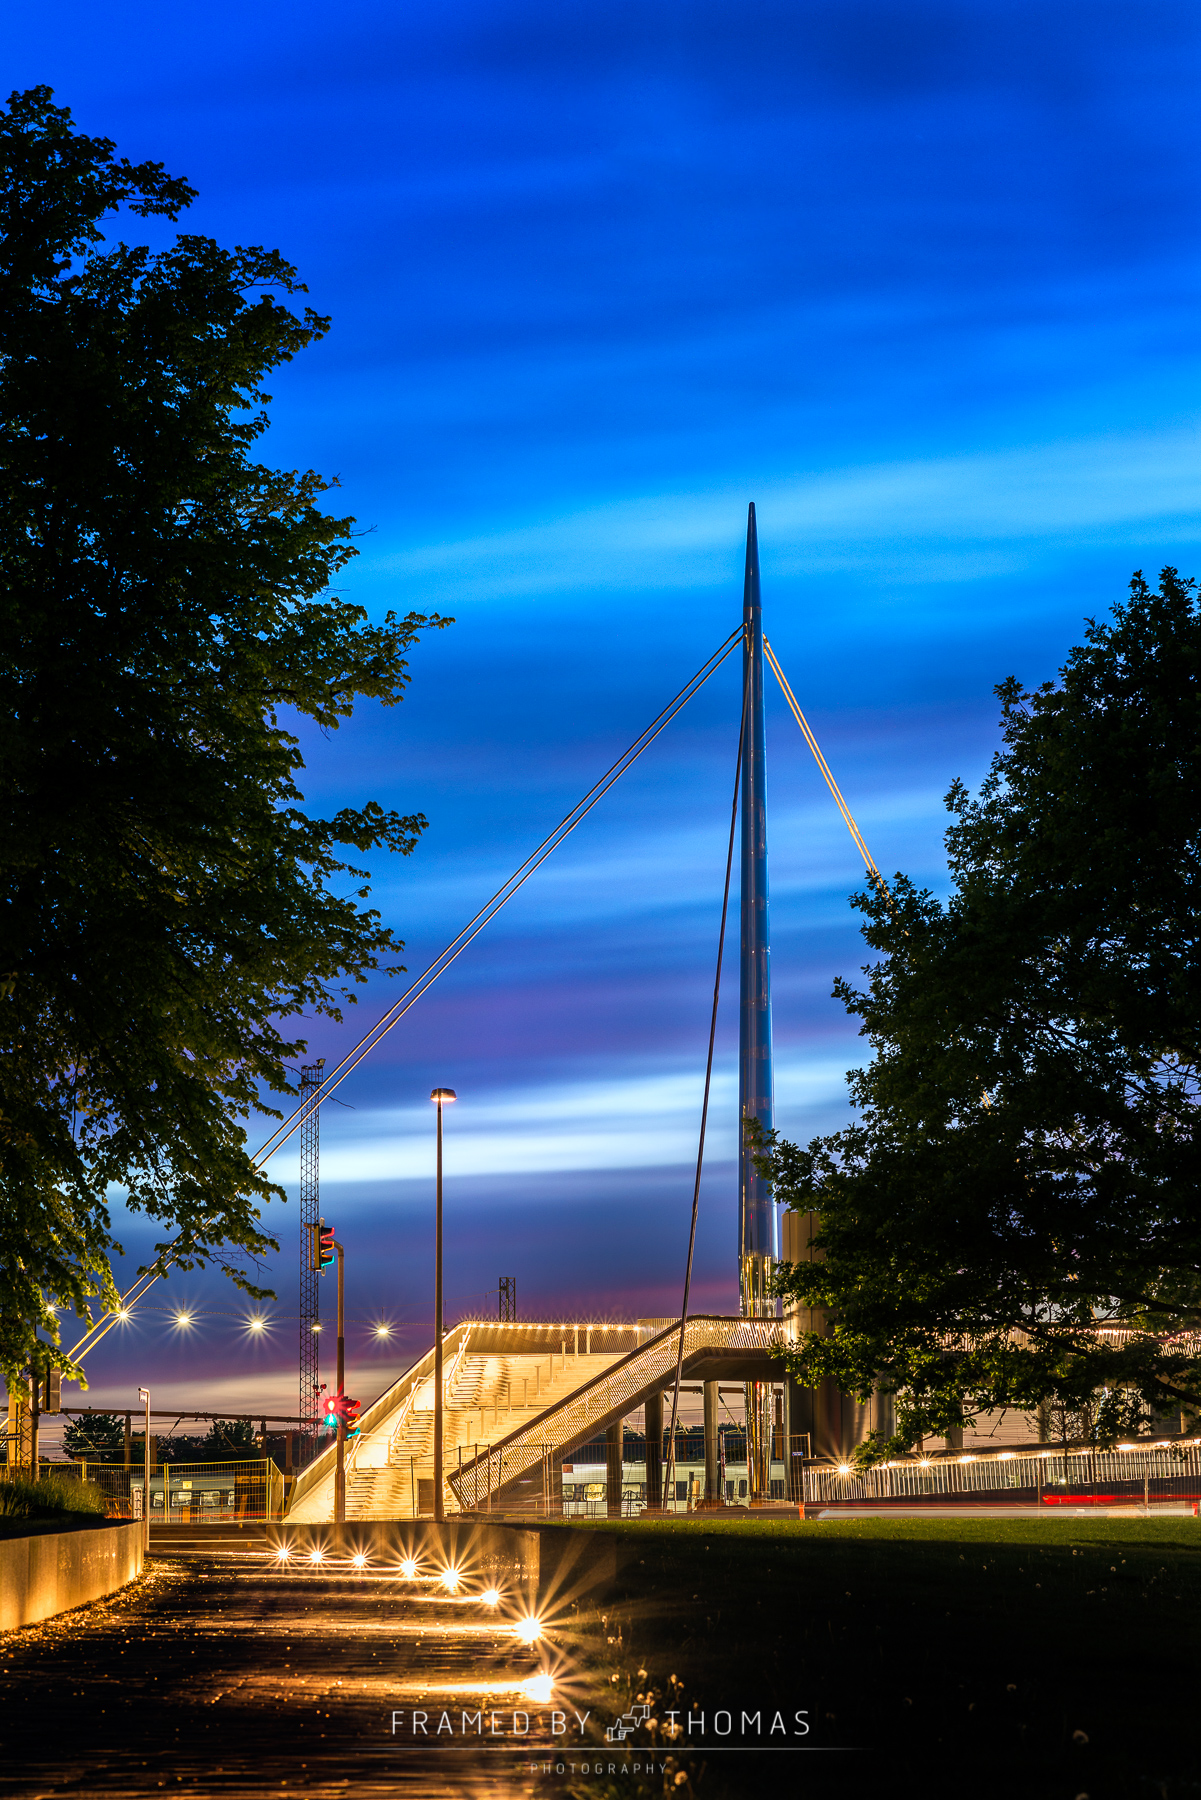 The City bridge in Odense, Denmark